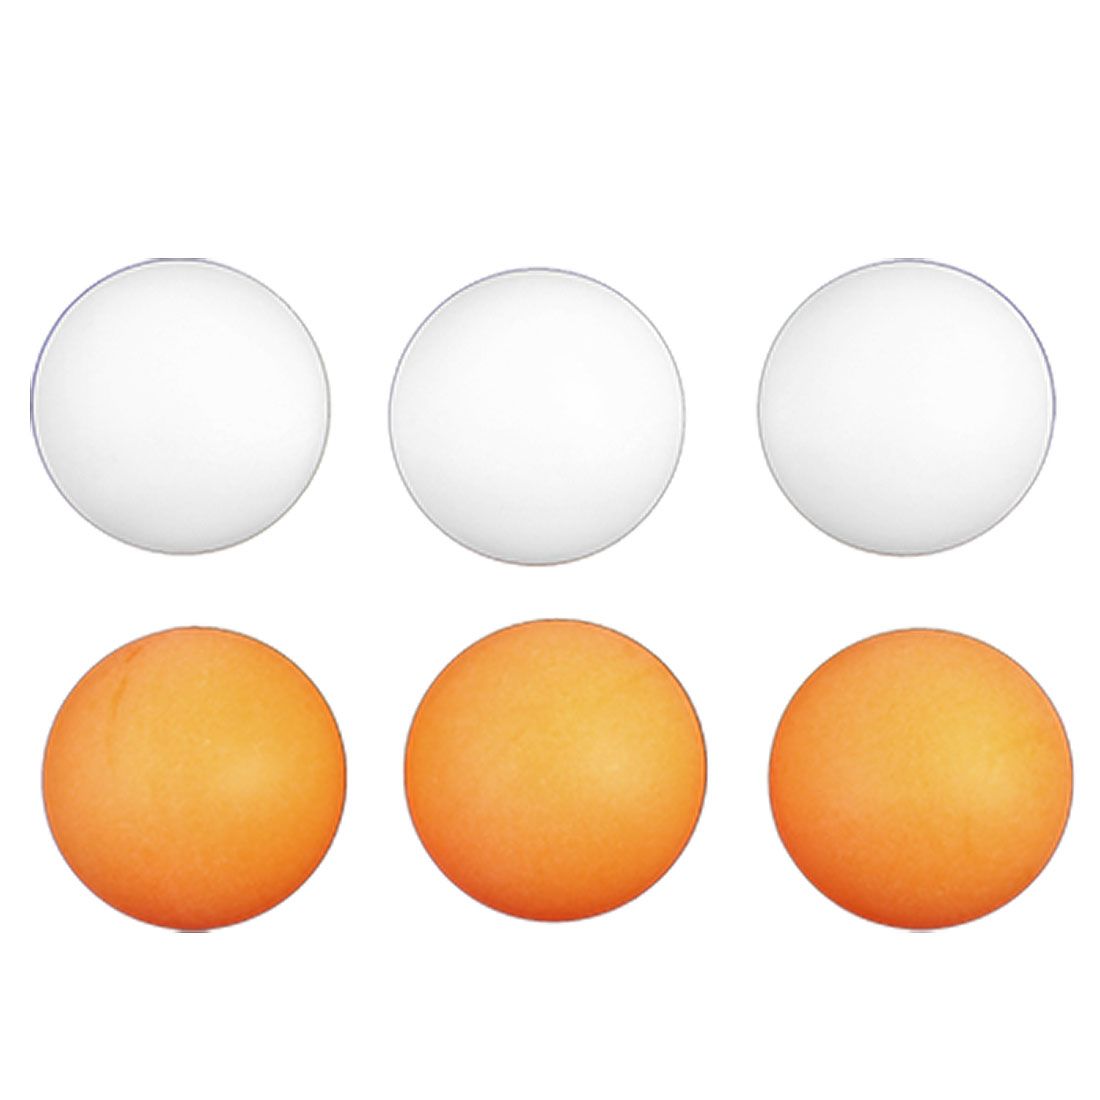 6 Pieces 40mm Diameter Orange White Table Tennis Balls